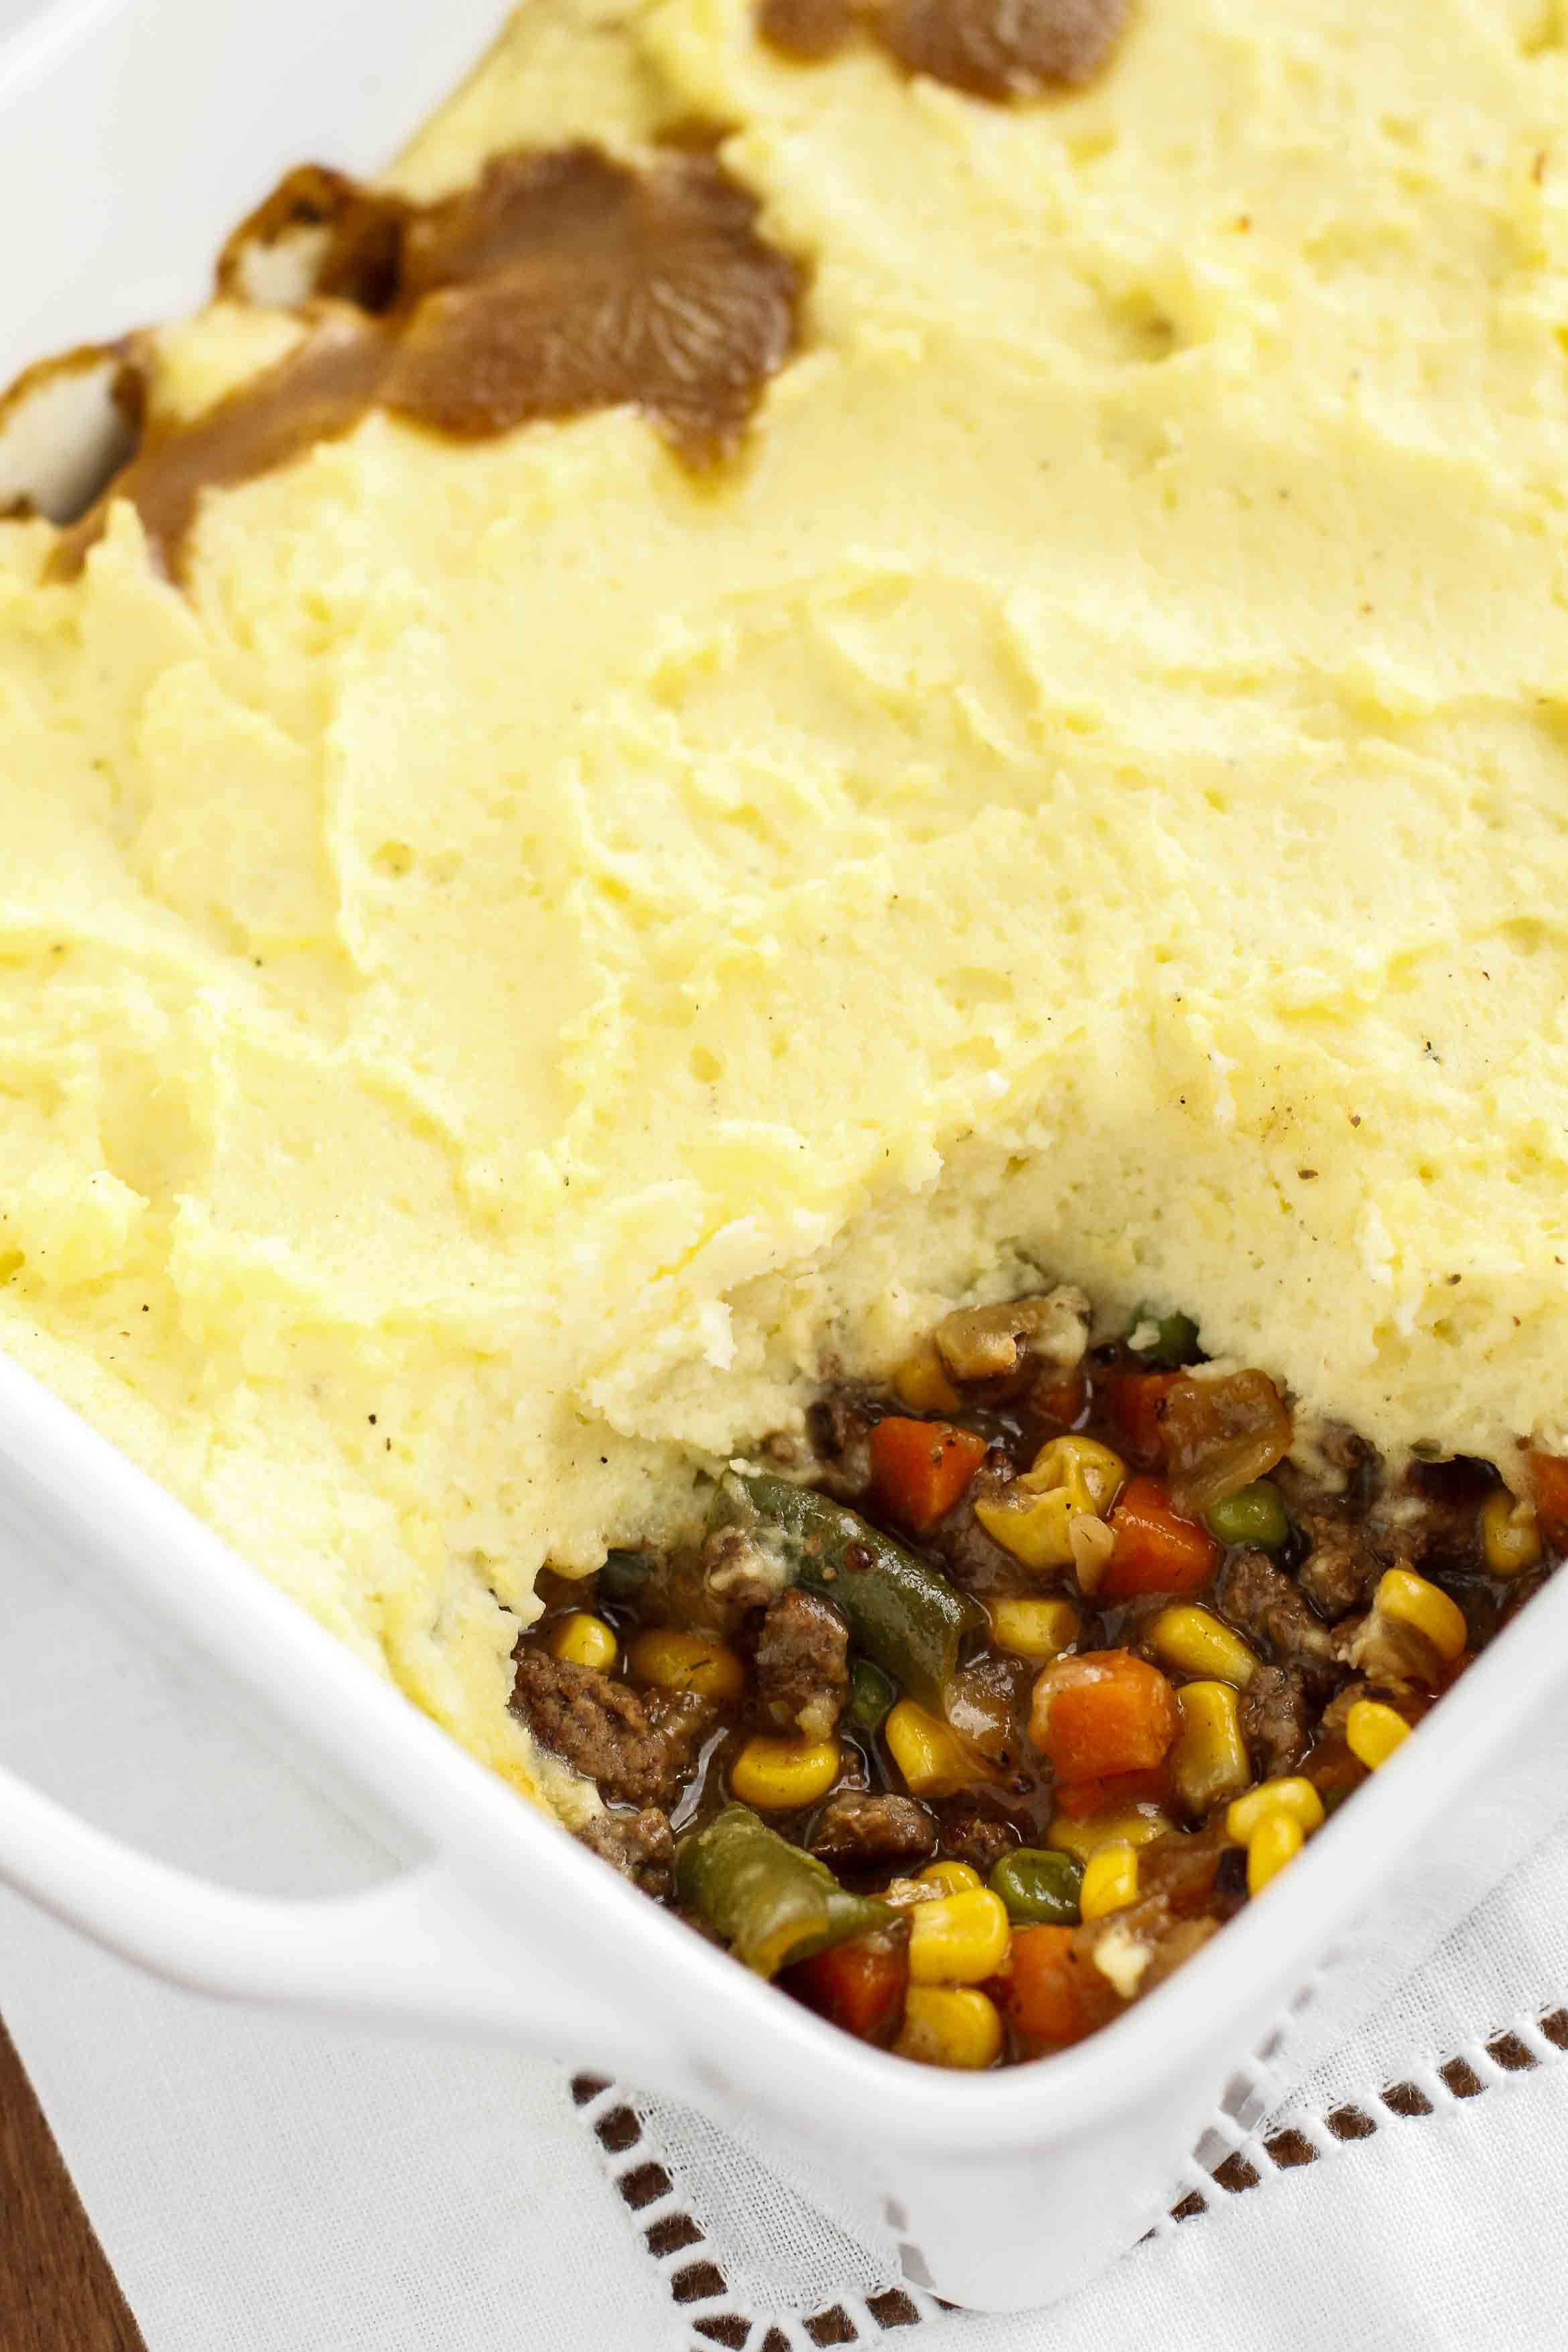 Shepherd's Pie Recipe -- shepherd's pie is a fabulous comfort food, as well as one of my favorite ways to use up leftover mashed potatoes! | unsophisticook.com